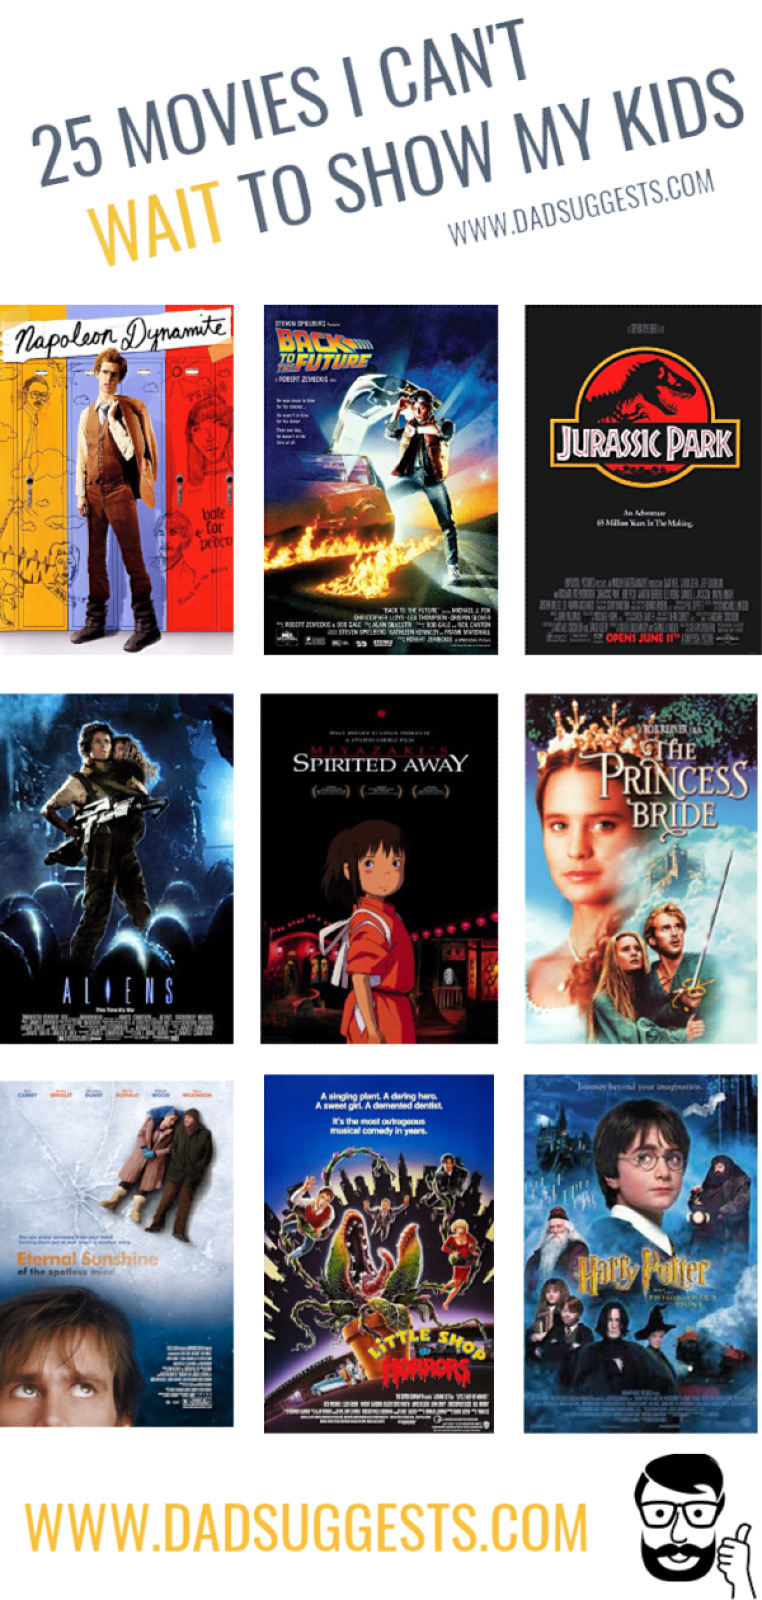 These are the movies I can't wait to share with my kids. Whether it's nostalgia or the pure artistic quality films, these movies mean a lot to me and I can't wait to pass them on. #familymovies #familymovienight #raisingkids #movienight #dadsuggests